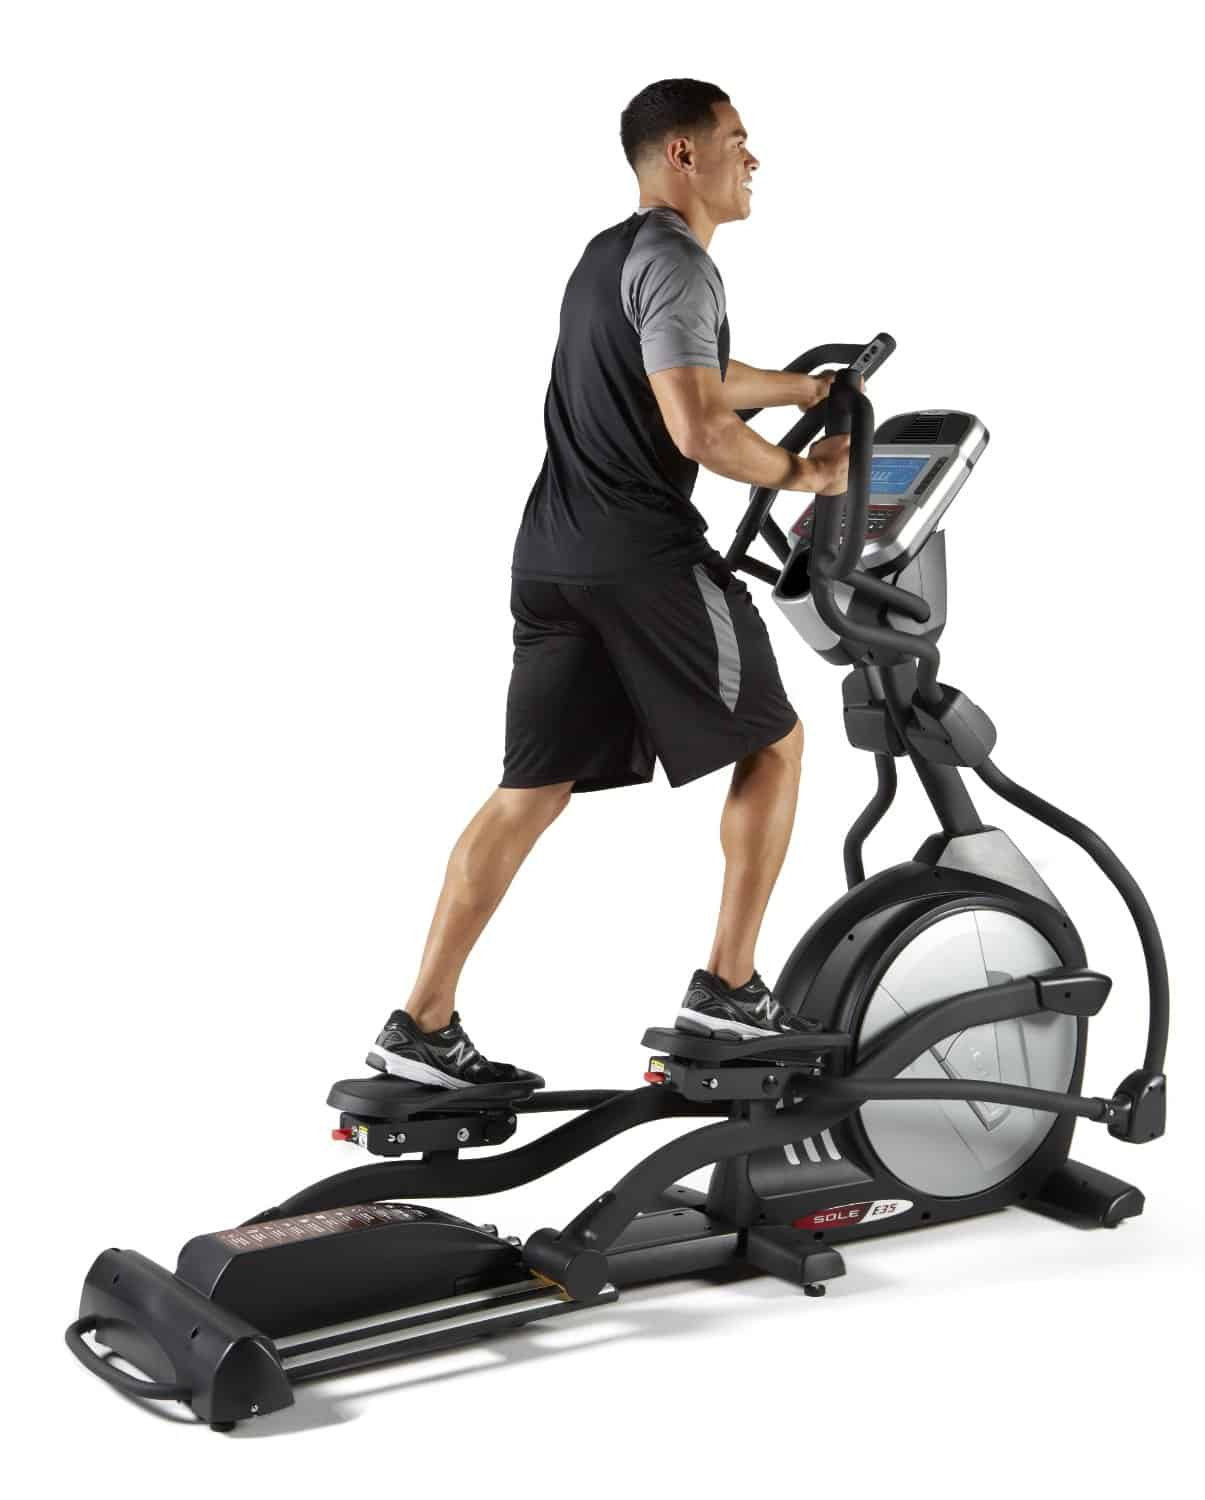 Sole Fitness E35 Review